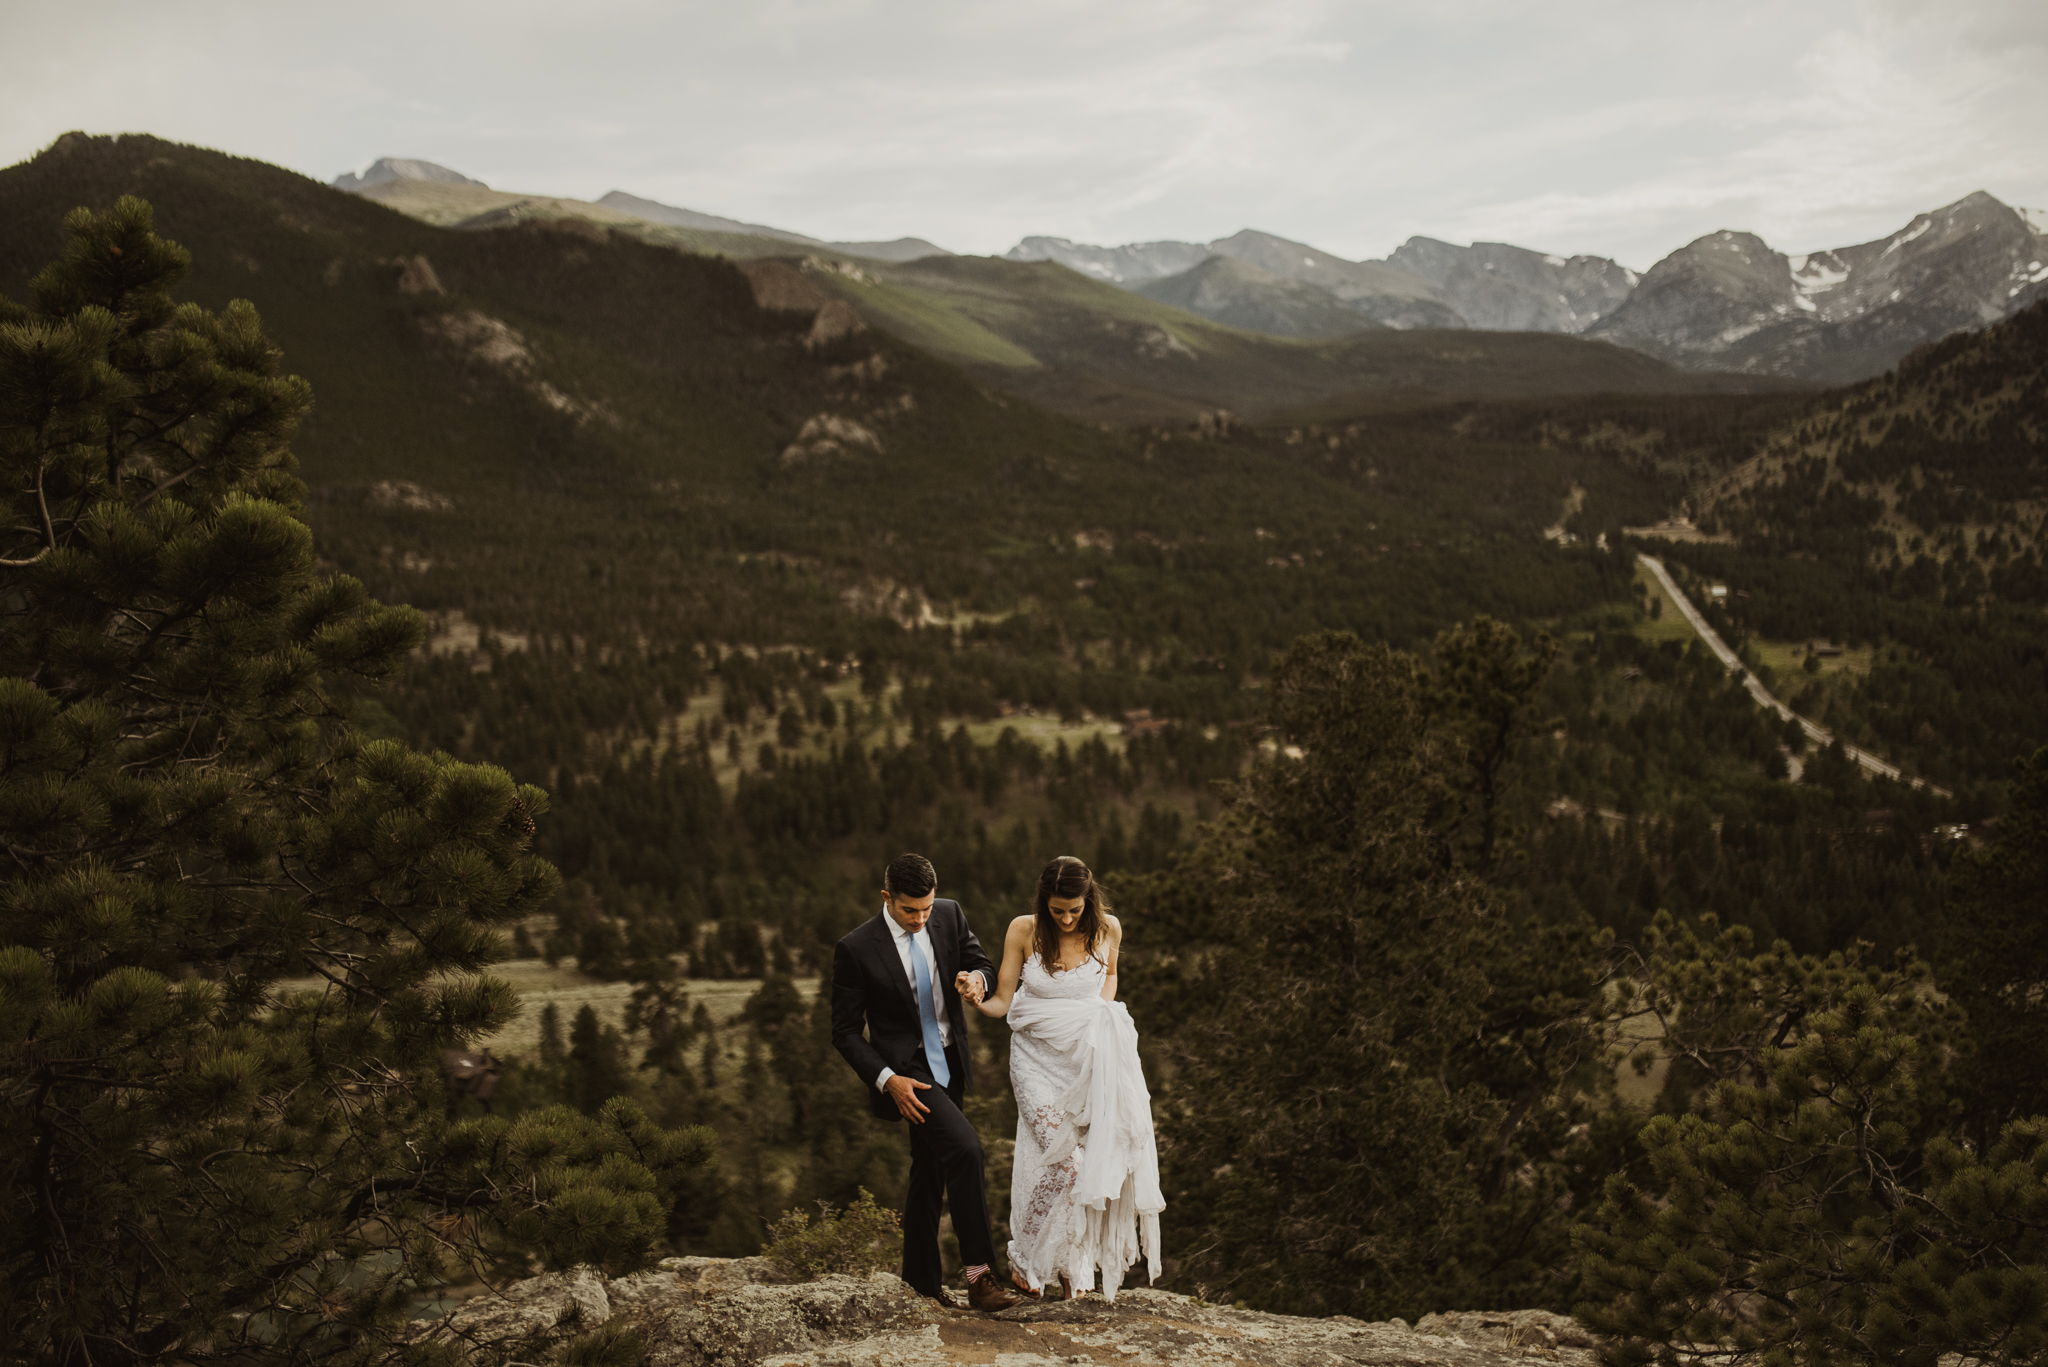 ©Isaiah + Taylor Photography - Estes National Park Adventure Elopement, Colorado Rockies-136.jpg